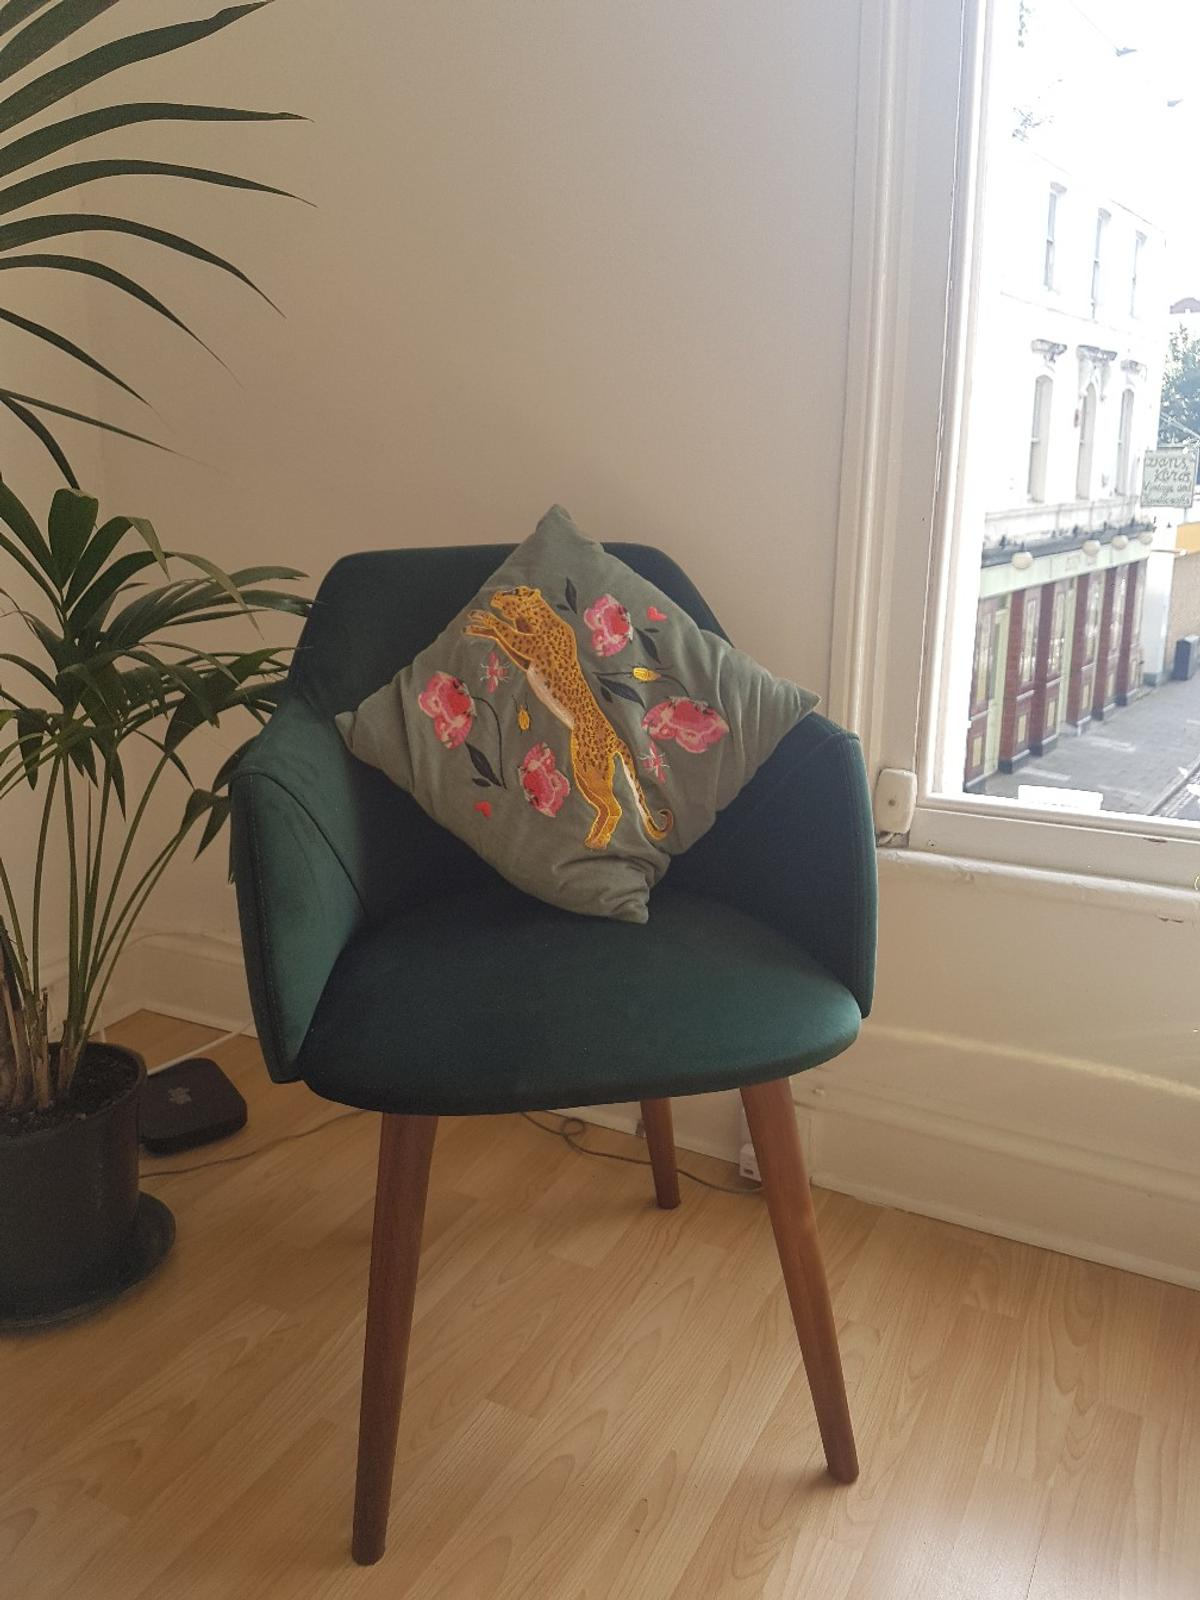 Pleasant Accent Chair In N1 Islington For 90 00 For Sale Shpock Ncnpc Chair Design For Home Ncnpcorg